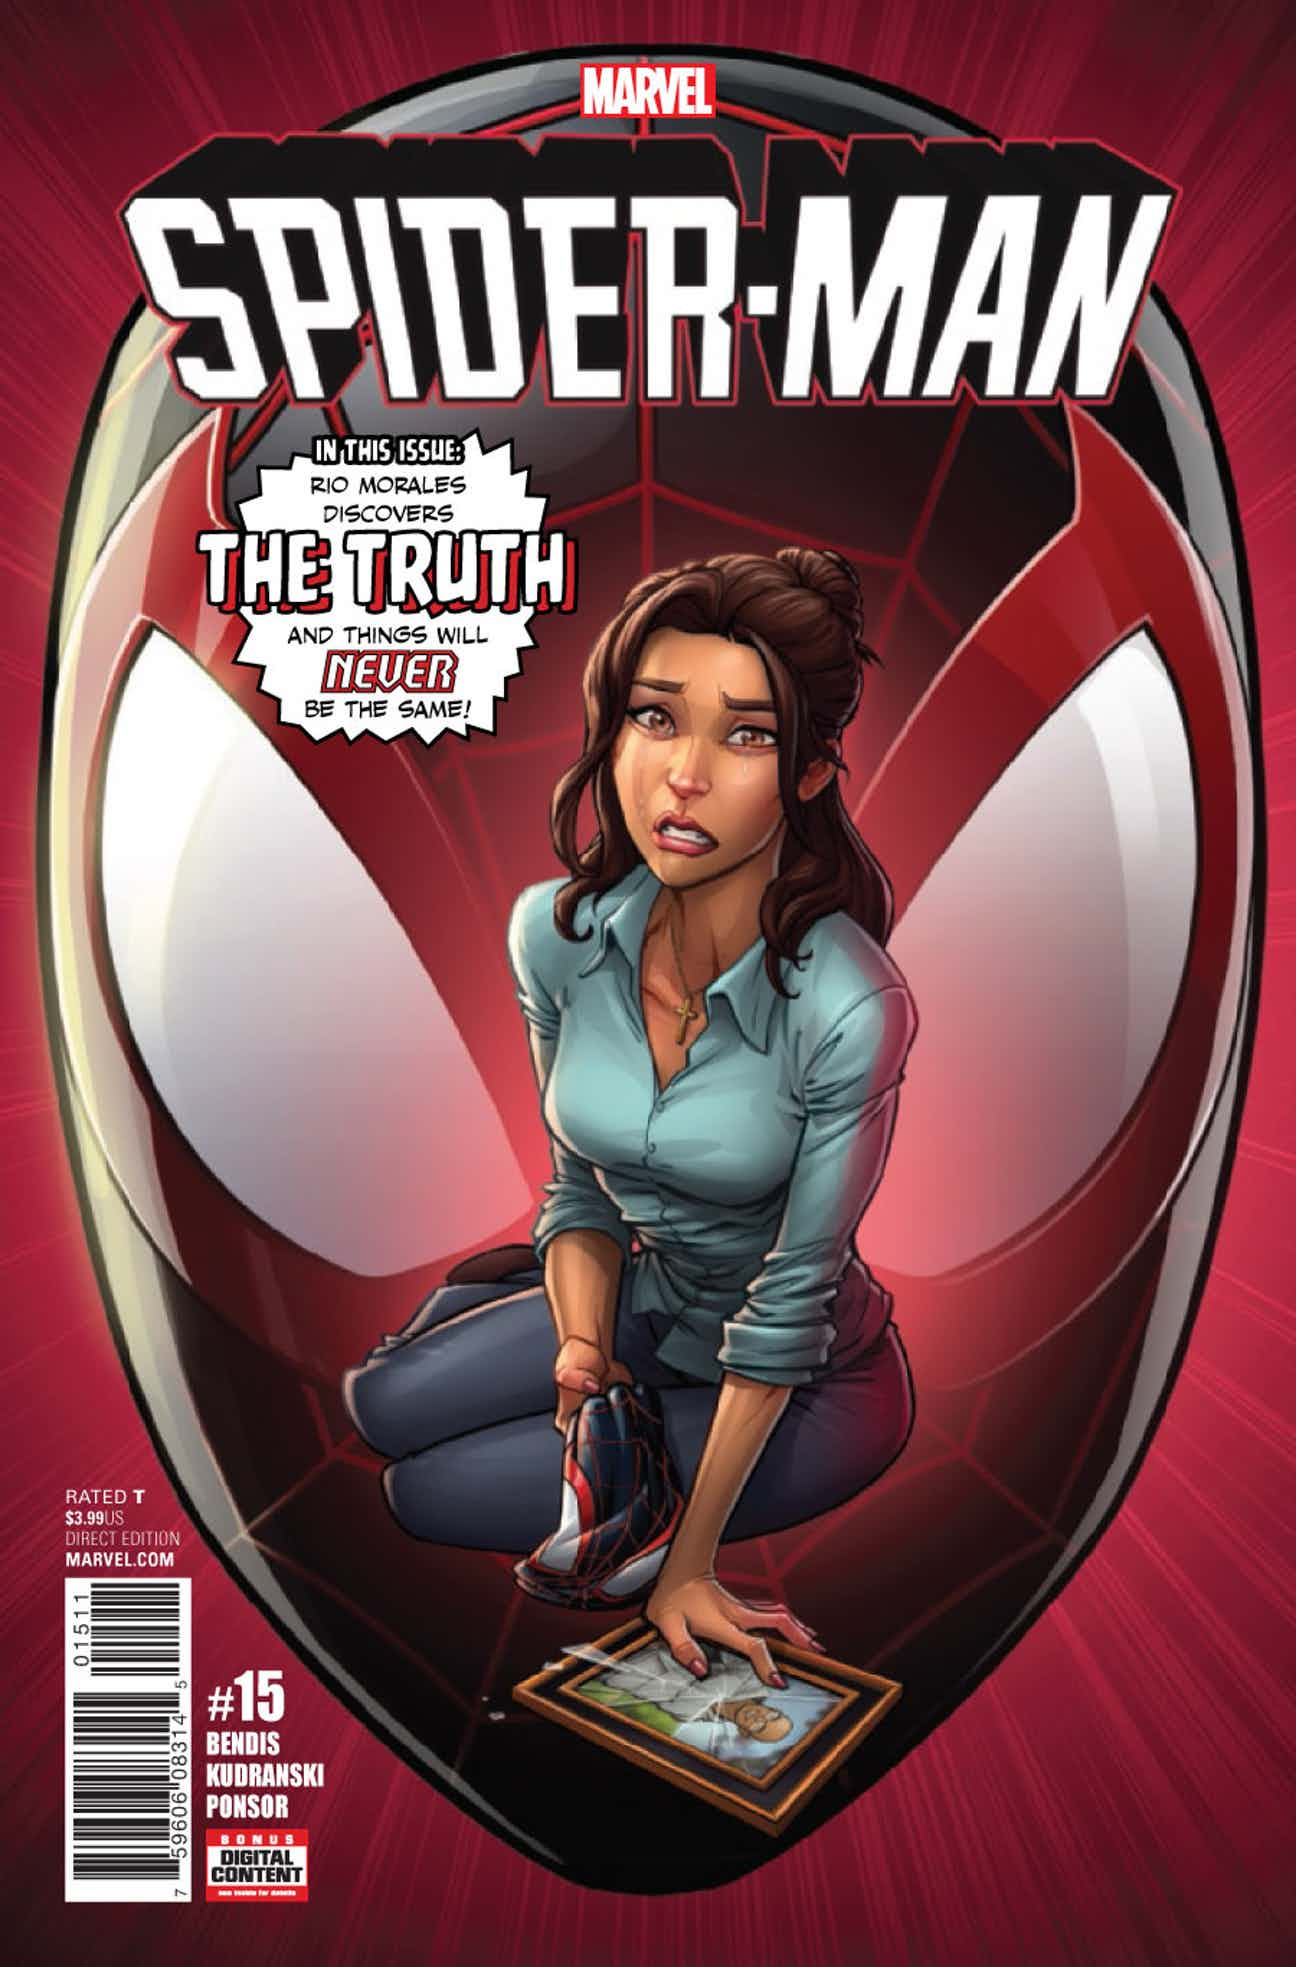 Spider-Man #15 Review